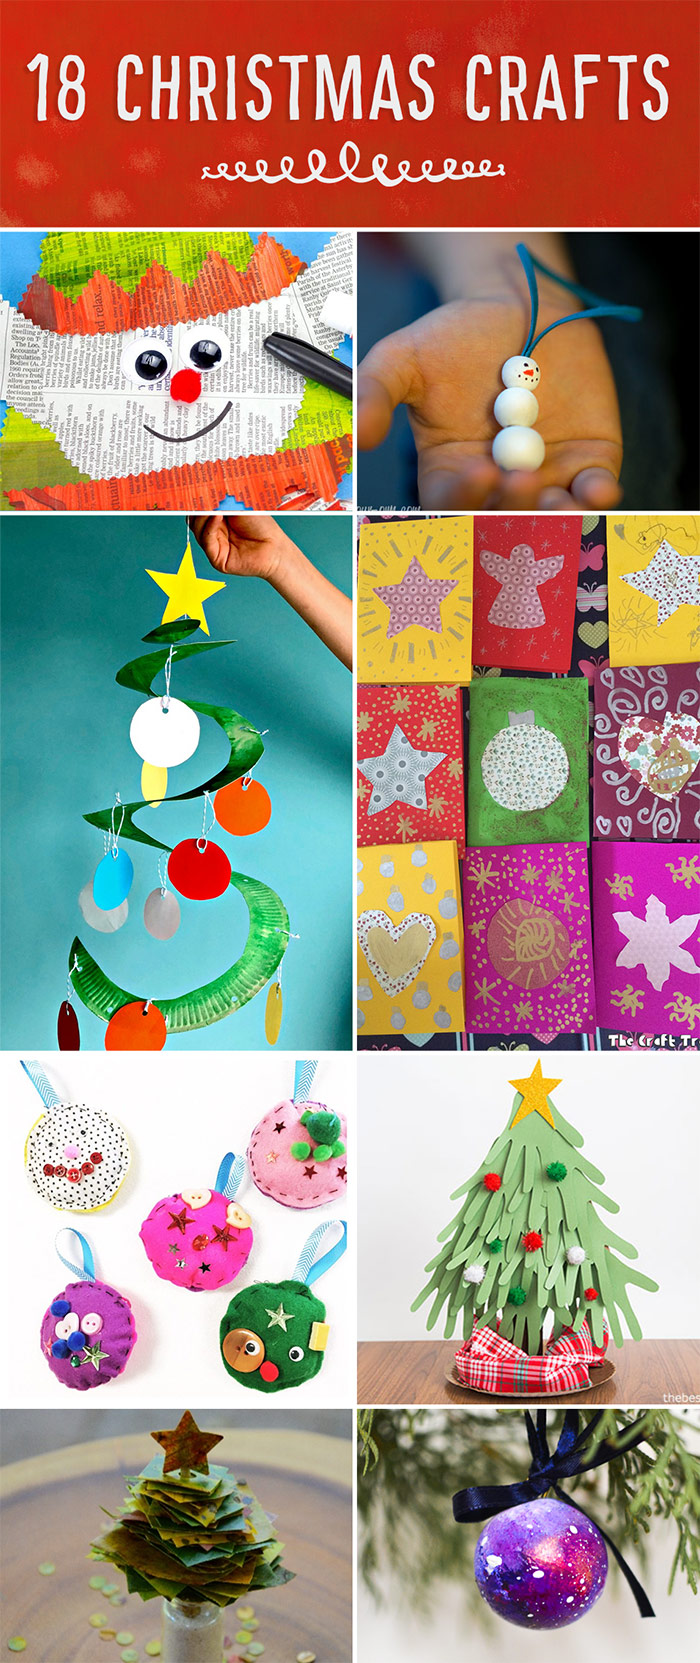 Christmassy Crafts!  Ornaments, cards and decorations: lots of creation ideas for you to make with your kids or students!